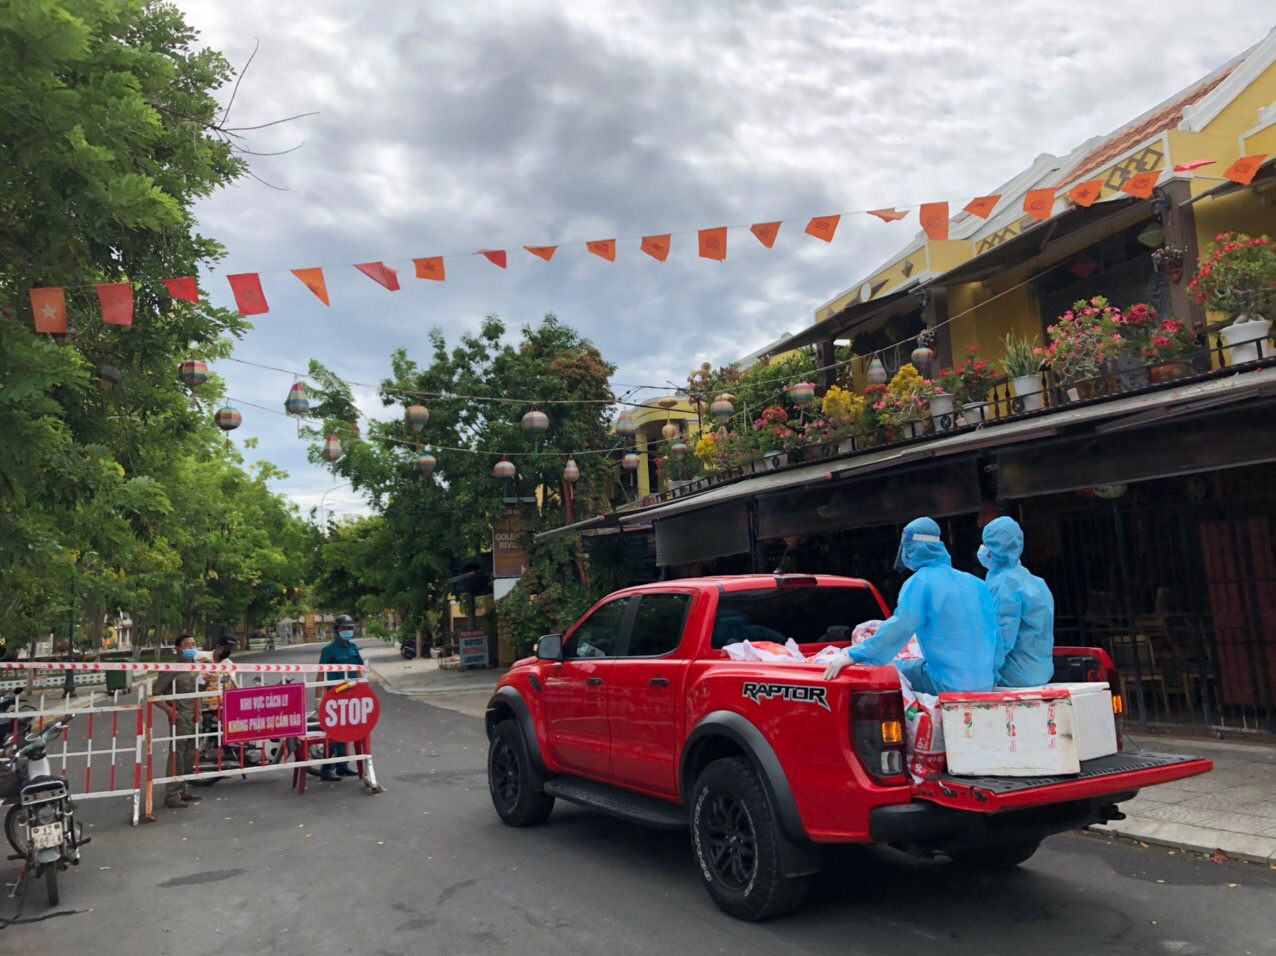 Trucks distribute essentials to Hoi An residents under COVID-19 social distancing rules